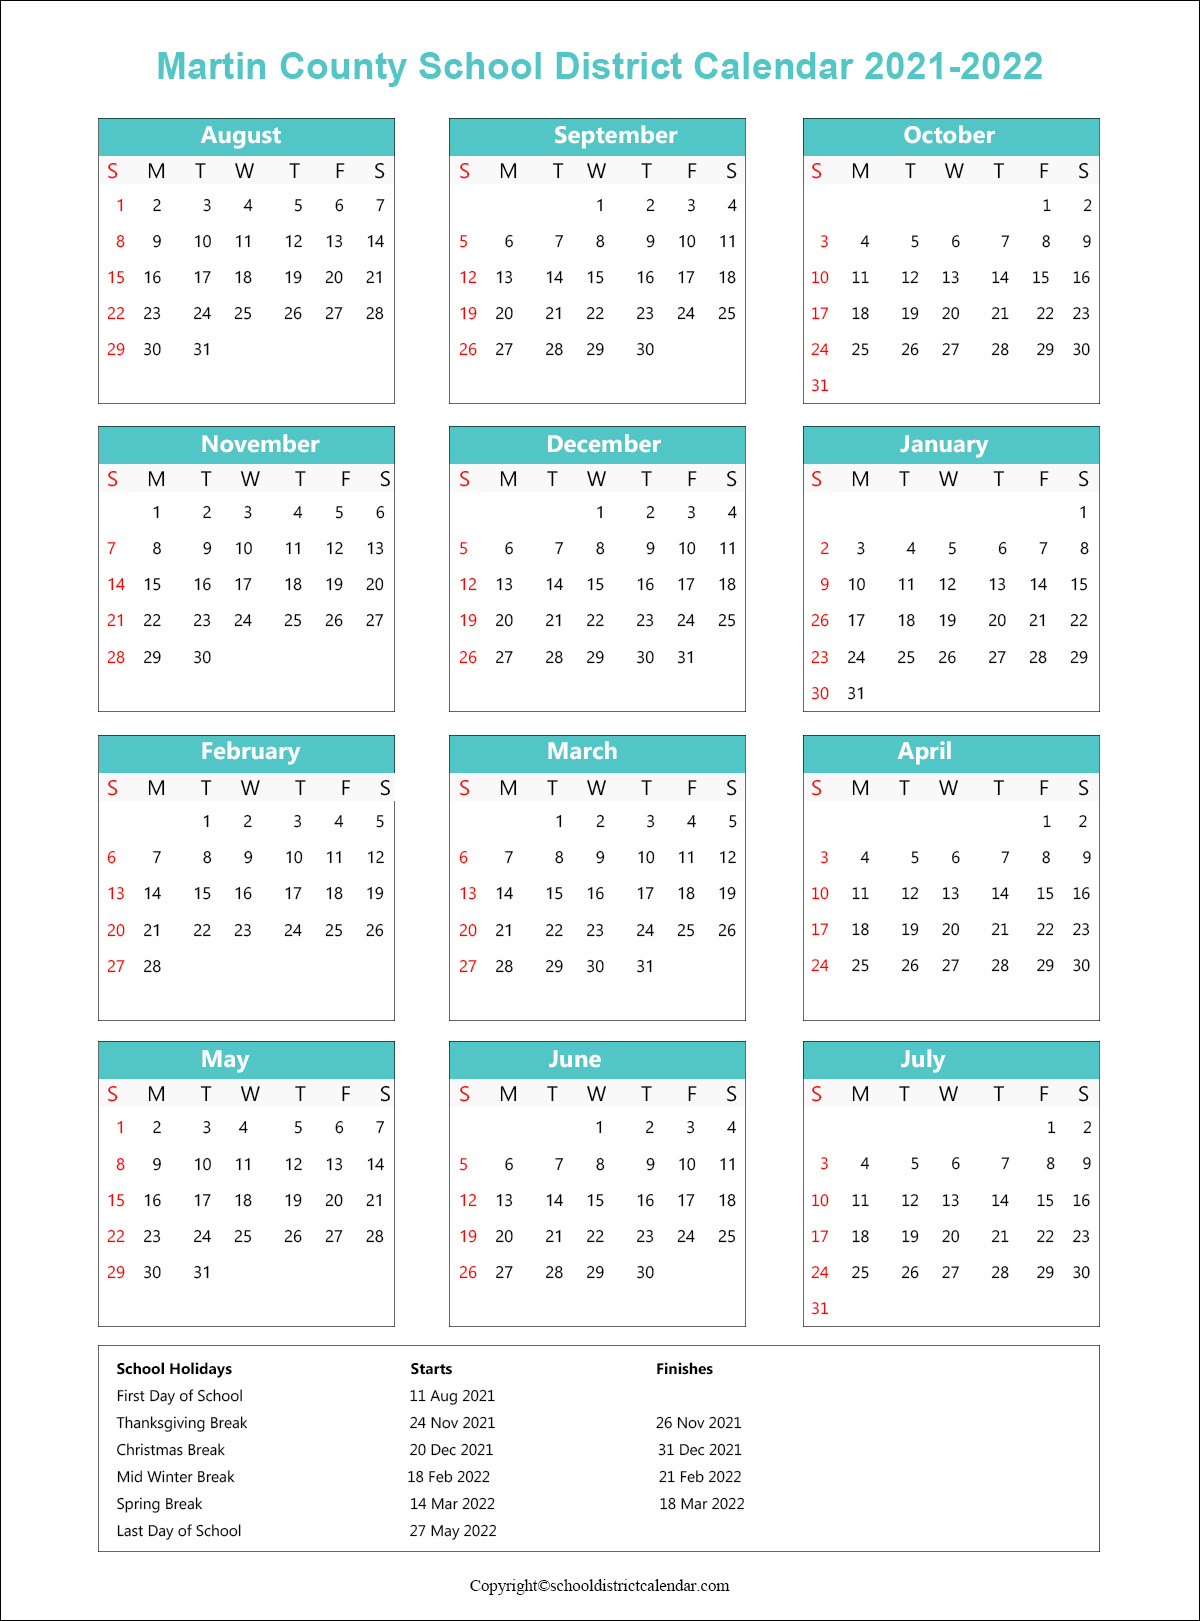 Martin County School District Calendar 2021